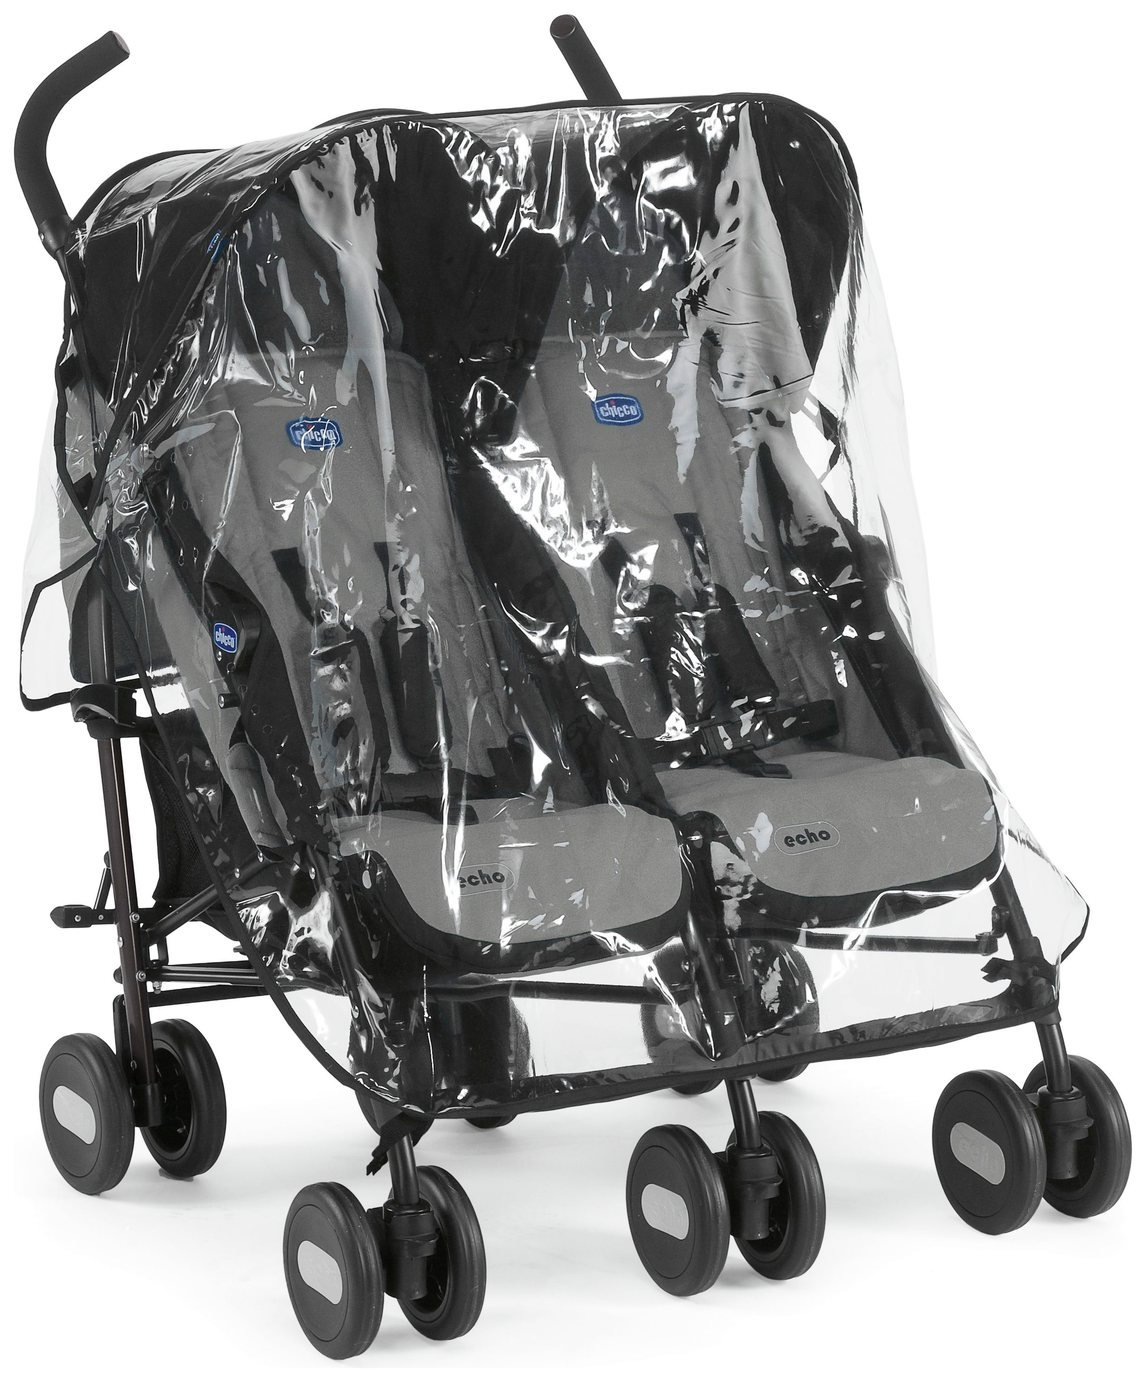 Chicco Echo Double Pushchair - Black Grey from Chicco